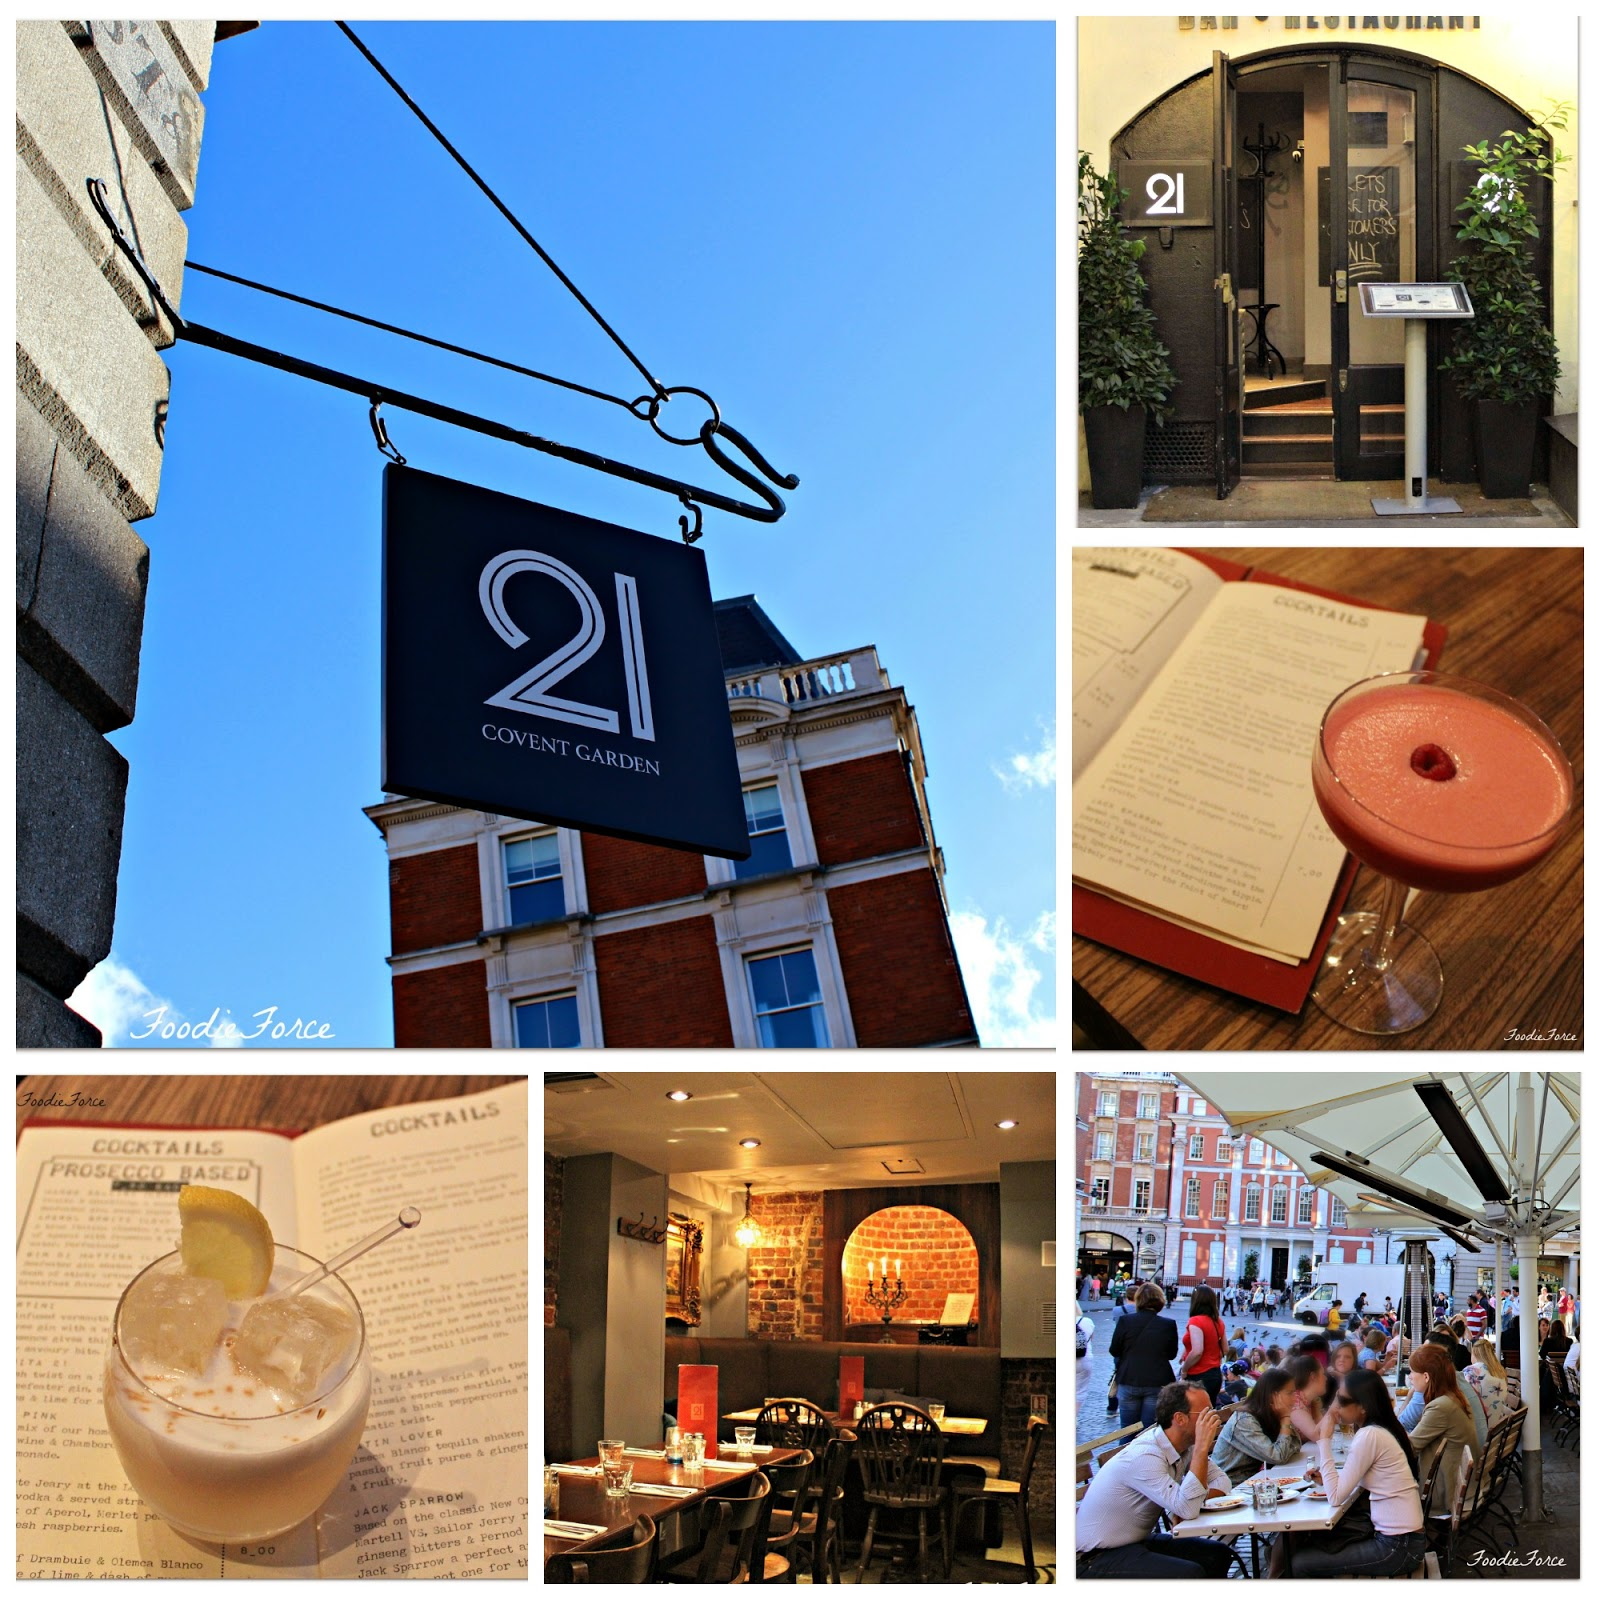 21 Restaurant Covent Garden